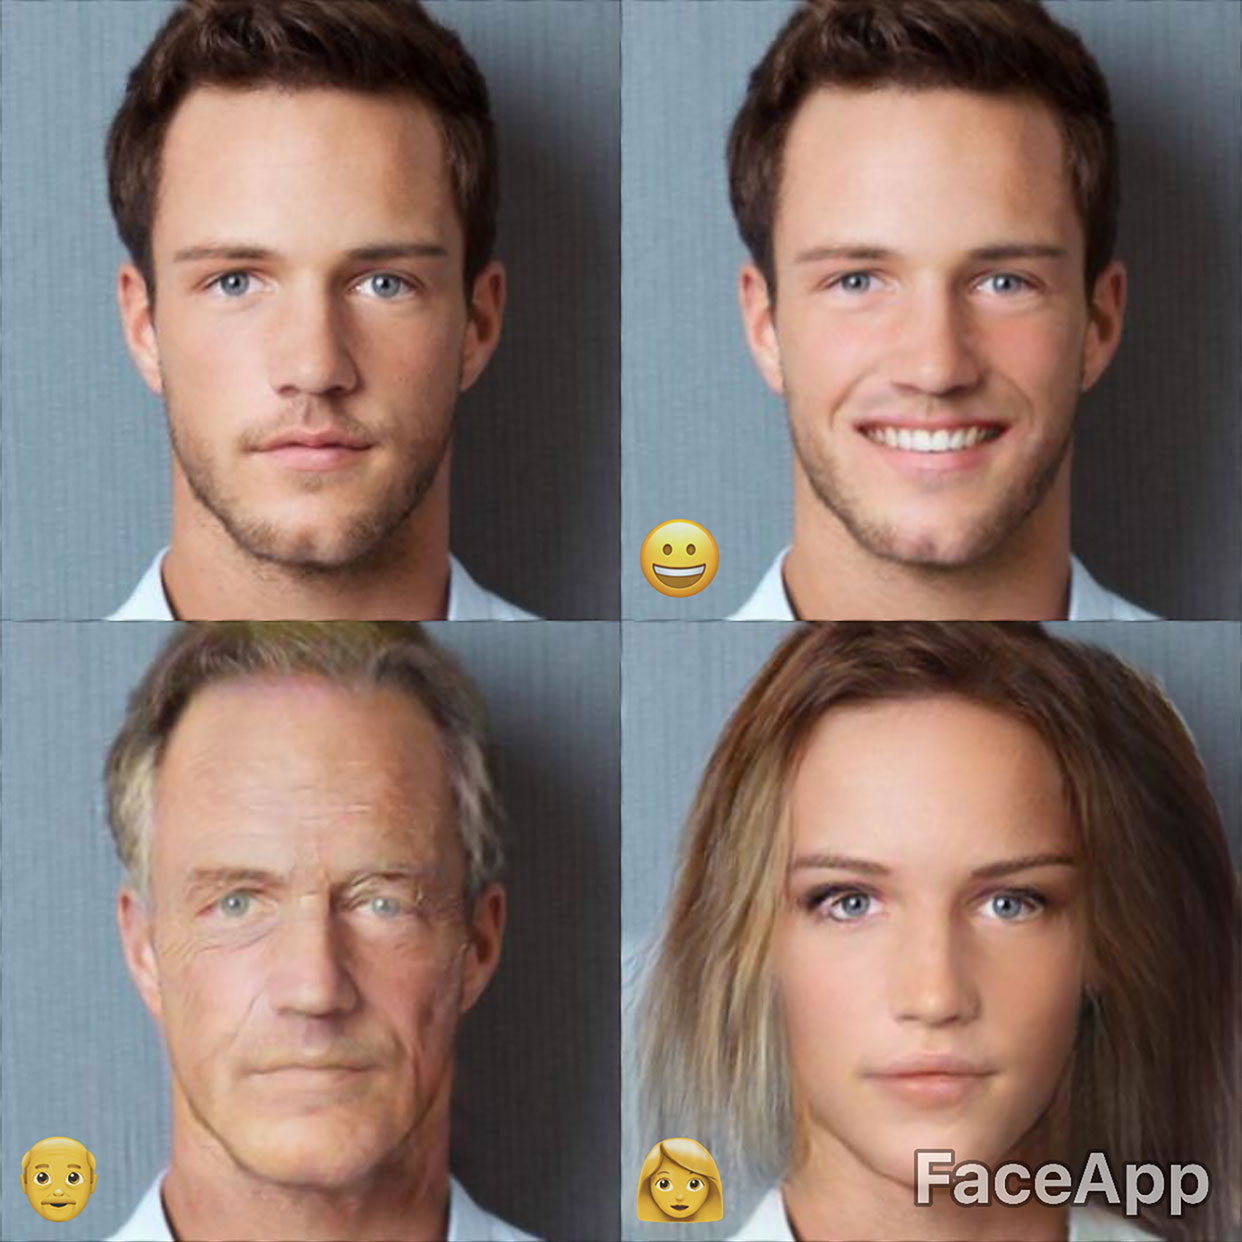 Download FaceApp PRO Version 1 0 278 - App Premium